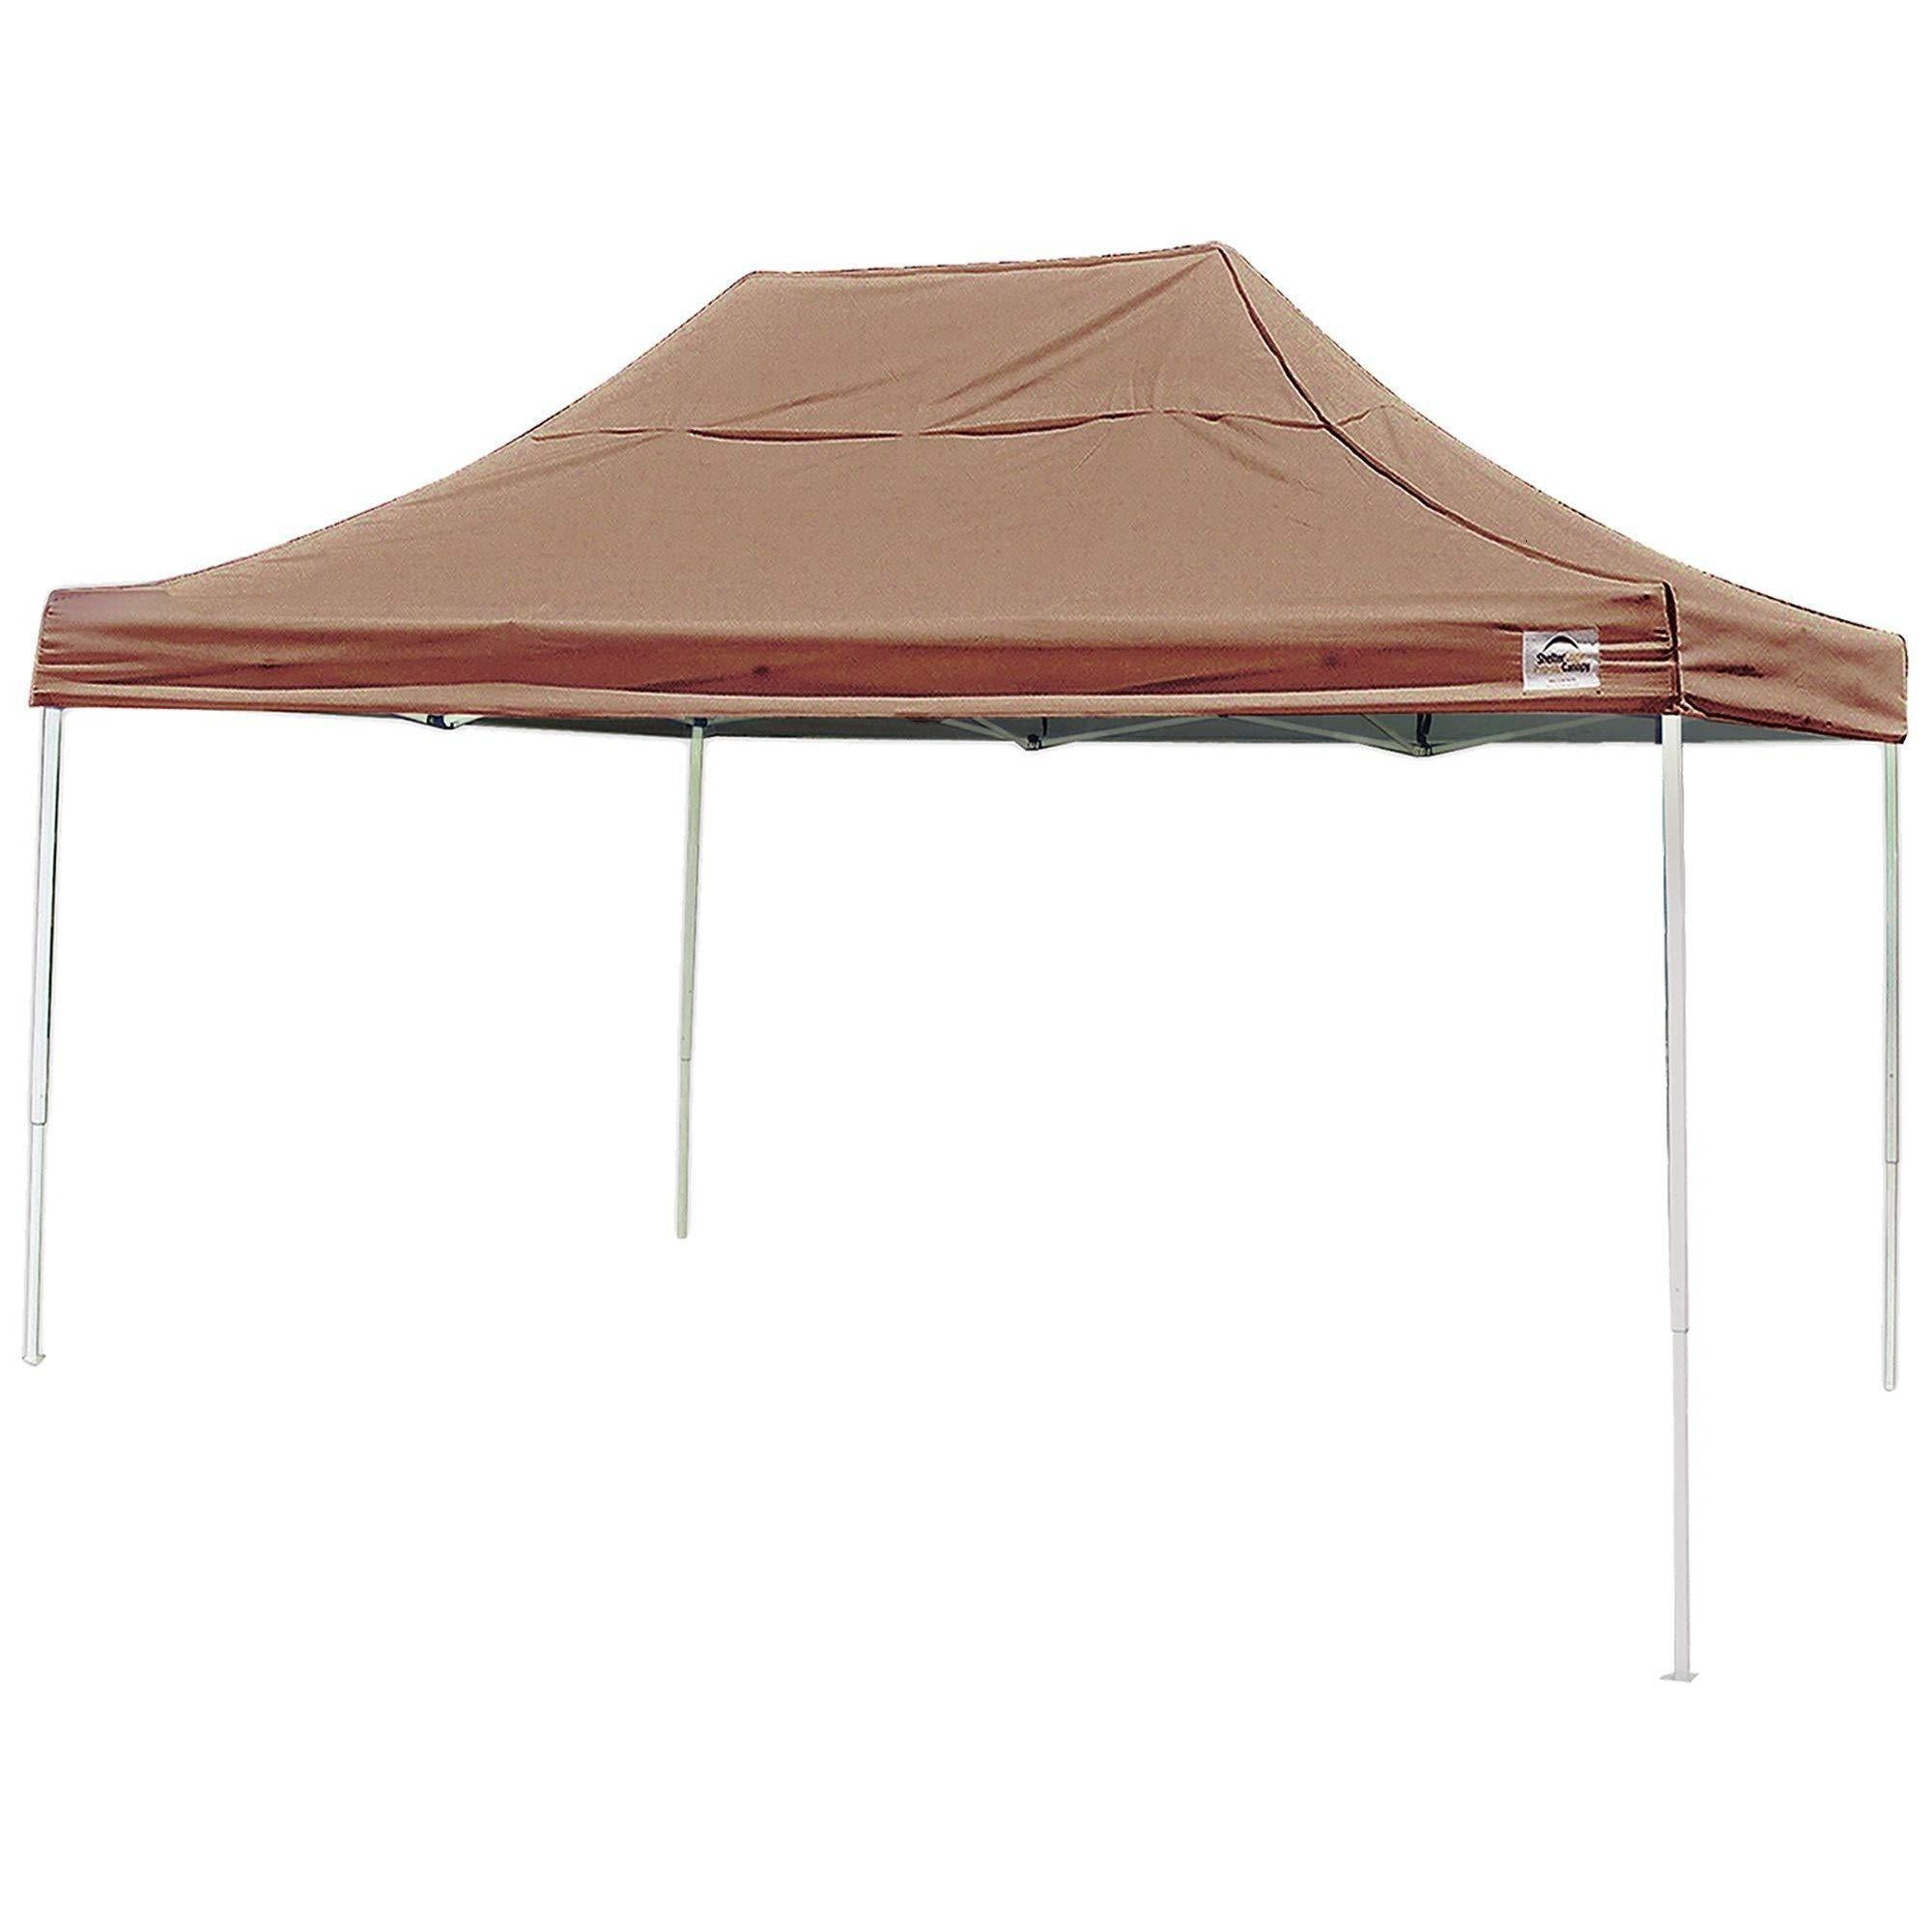 ShelterLogic Straight Leg Pop-Up Canopy with Roller Bag, 10 x 15 ft.